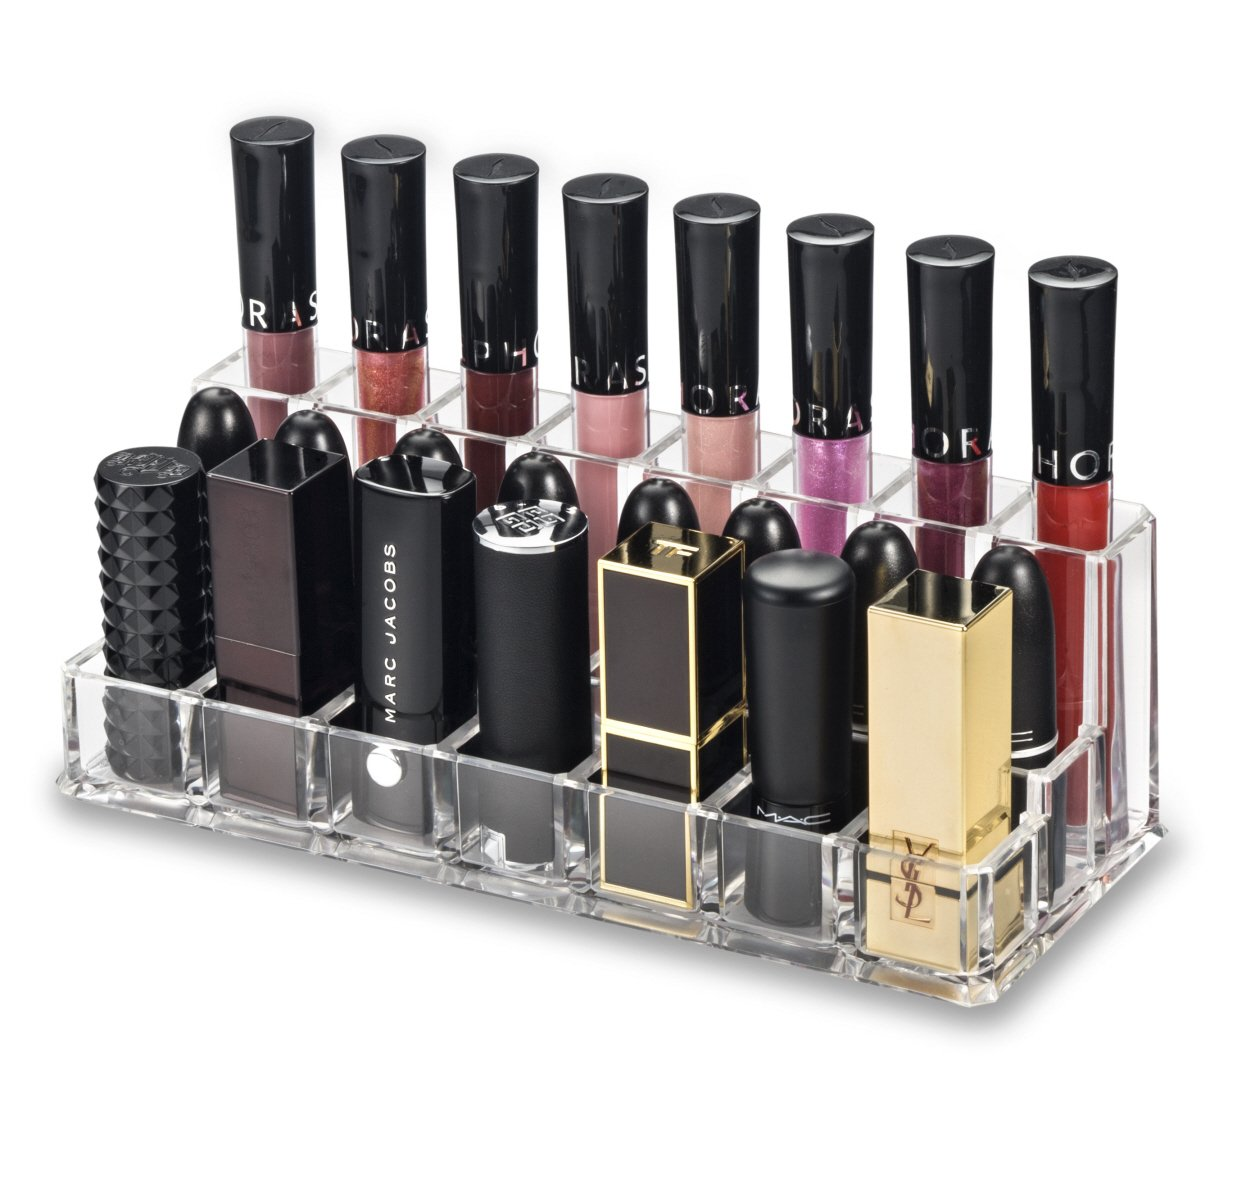 byAlegory Acrylic Combination Lip Makeup Organizer for (Lip Gloss, Lipstick, Large Based Lipsticks)   23 Space Cosmetic Storage (CLEAR)